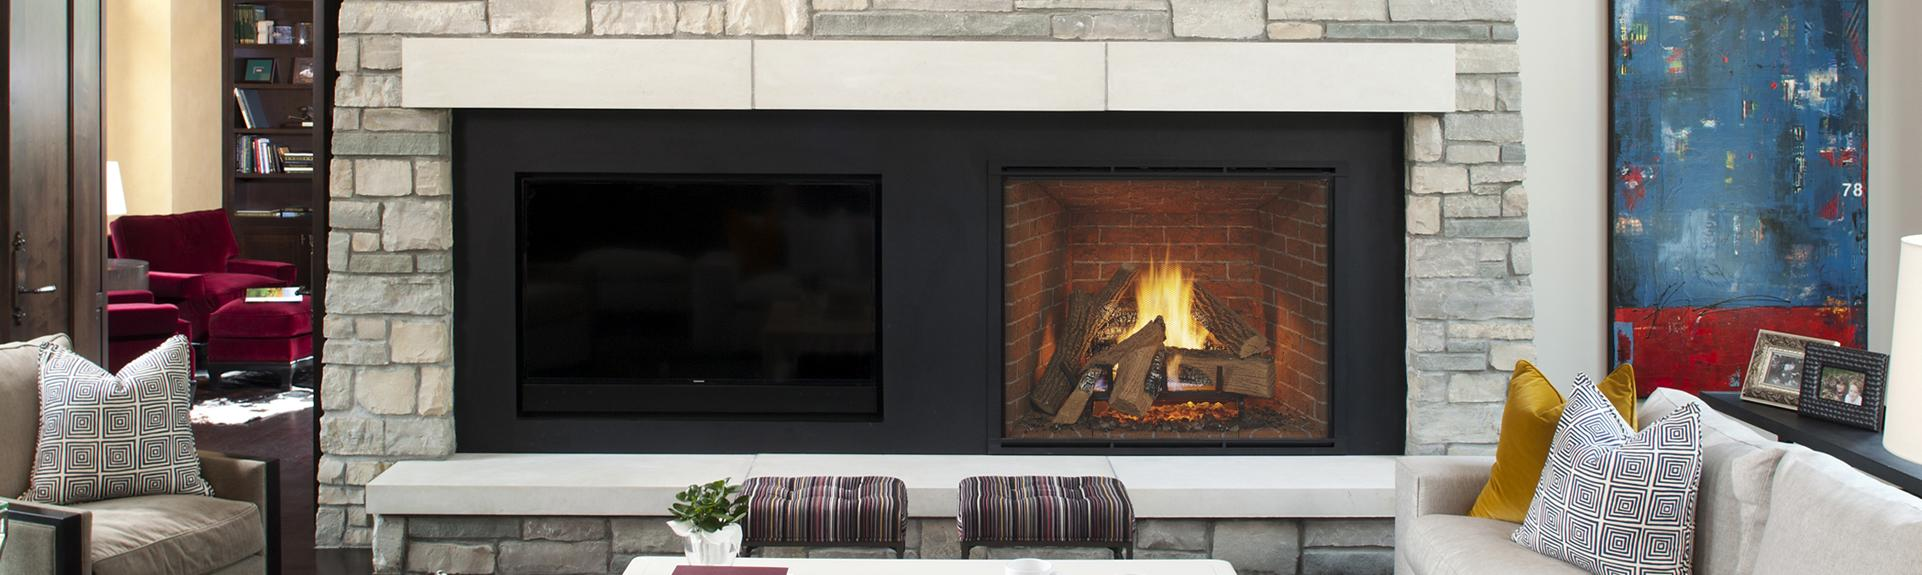 Fireplace Faqs Wood Stove Fireplace Center